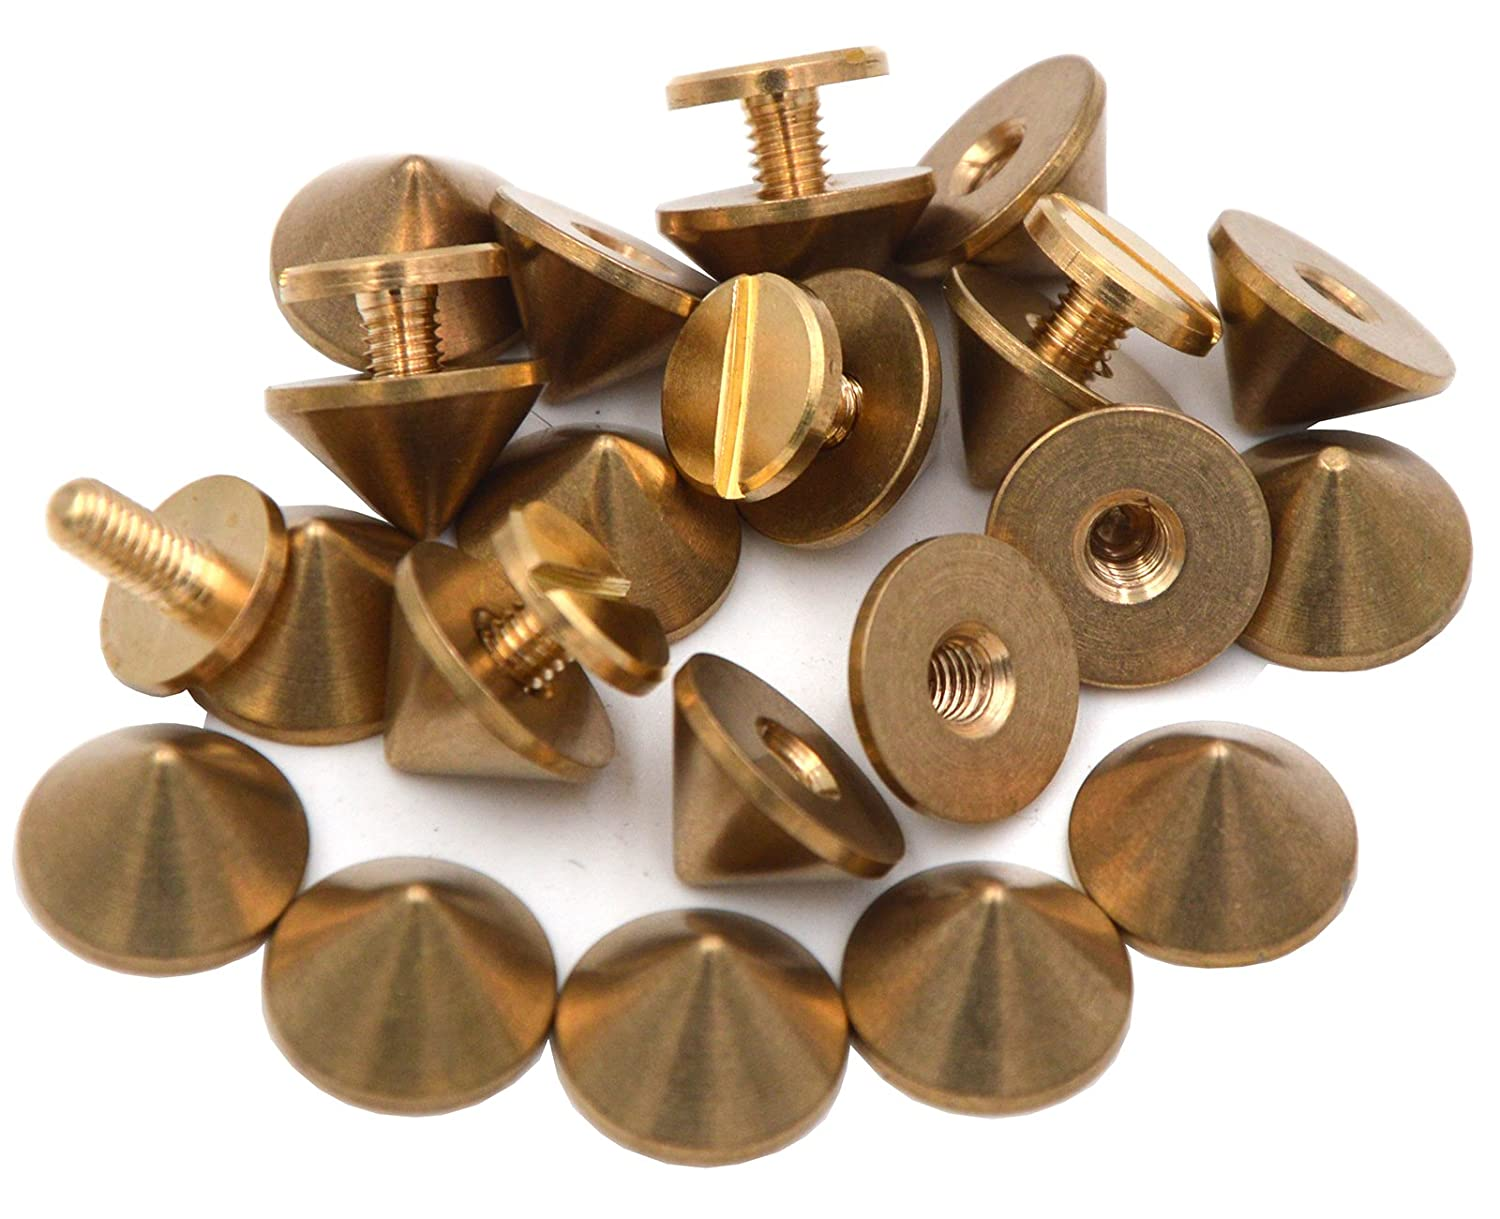 Okones Pack of 20, Solid Brass Tree Spike Studs and Spikes Metalic Screw Rivets Nails Button for Leathercraft Punk DIY (1/3''×1/2''tall Spikes)